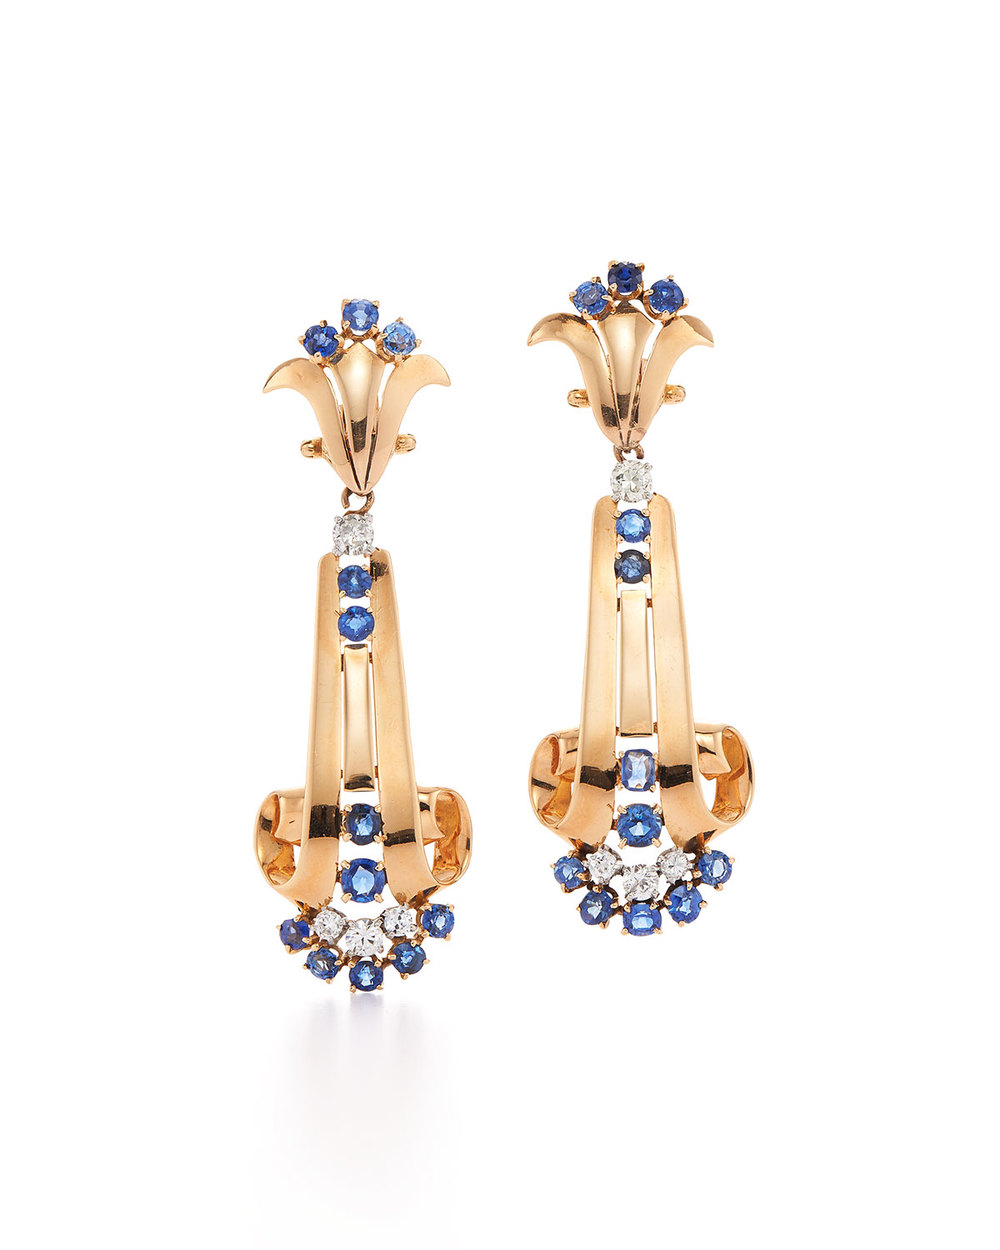 Fred Leighton  sapphire & diamond retro clip earrings by Verger, $17,000,  available at Bergdorf Goodman .